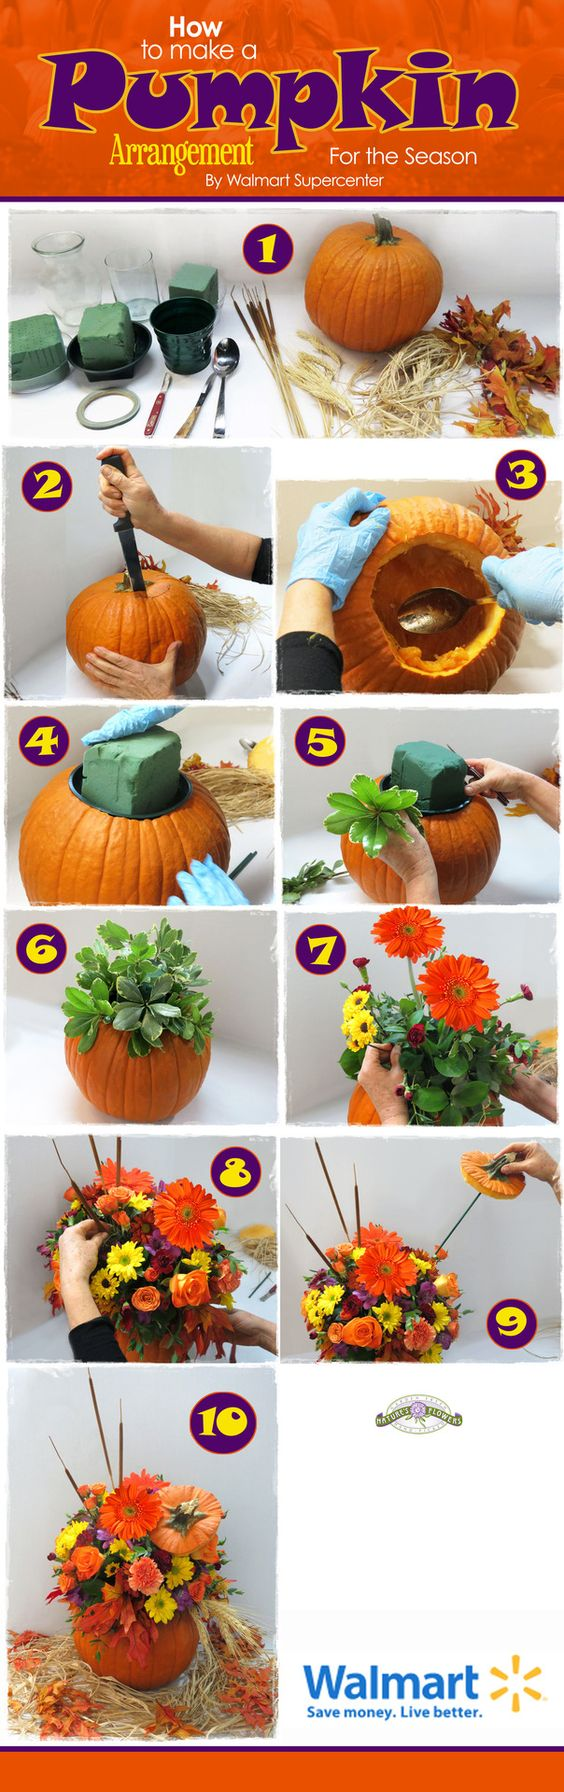 """You Need:  Knife, Pumpkin, Vase, Floral Dish or empty can 2-3"""" smaller than pumpkin, Scissors, Spoon, Dry Fall Leaves, Wheat Spikes, Cattails, Fall Flowers, Tape,  Floral Foam (if you are going to use a dish)    instructions: Carve pumpkin, make hole 1.5"""" larger than vase.  Remove seeds & pulp.  Fill vase halfway with water or soak the foam; place in pumpkin.  Select flowers, if you are using a vase you must trim the stems twice as tall as the pumpkin.  Place tallest flowers in center"""